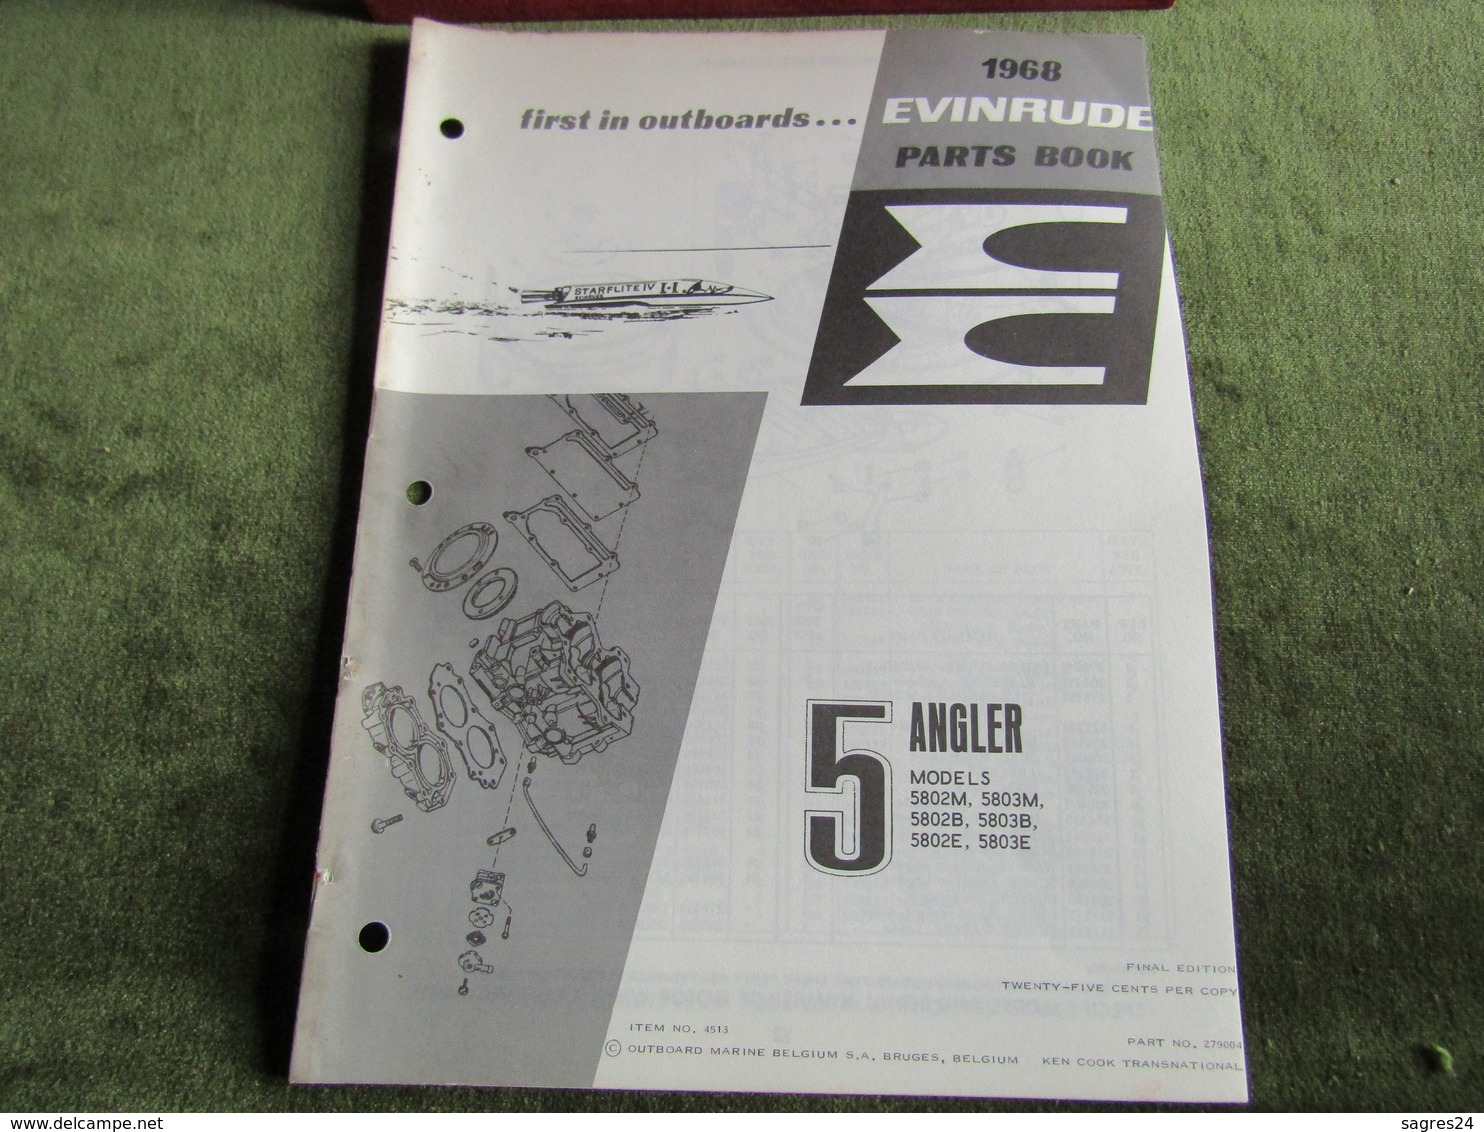 Evinrude Outboard 5 Angler Parts Book 1968 - Boats